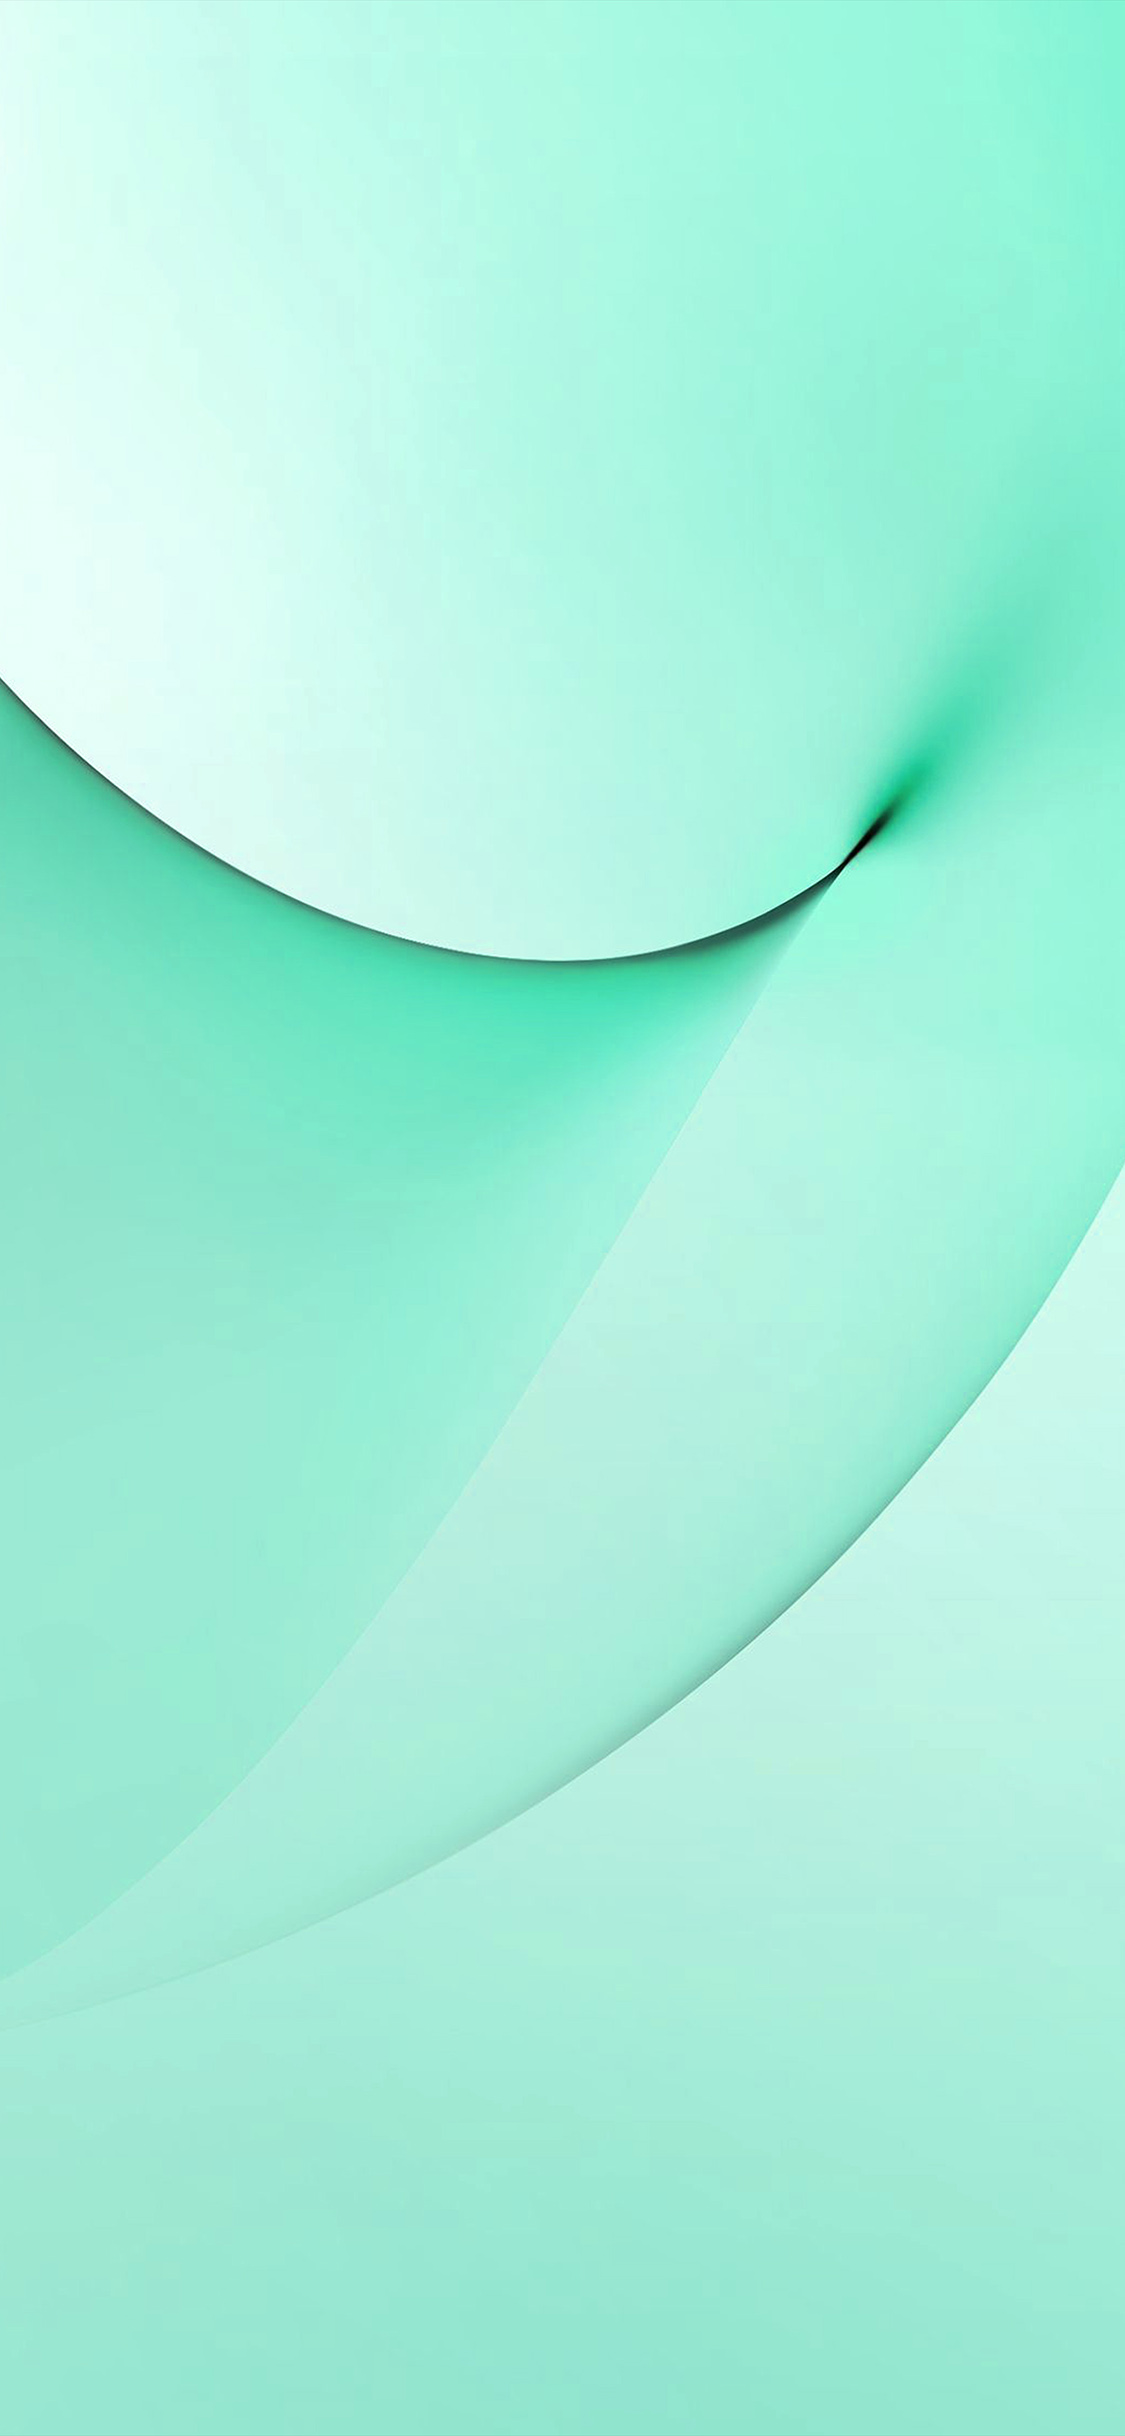 iPhoneXpapers.com-Apple-iPhone-wallpaper-vt83-curve-samsung-galaxy-art-green-pattern